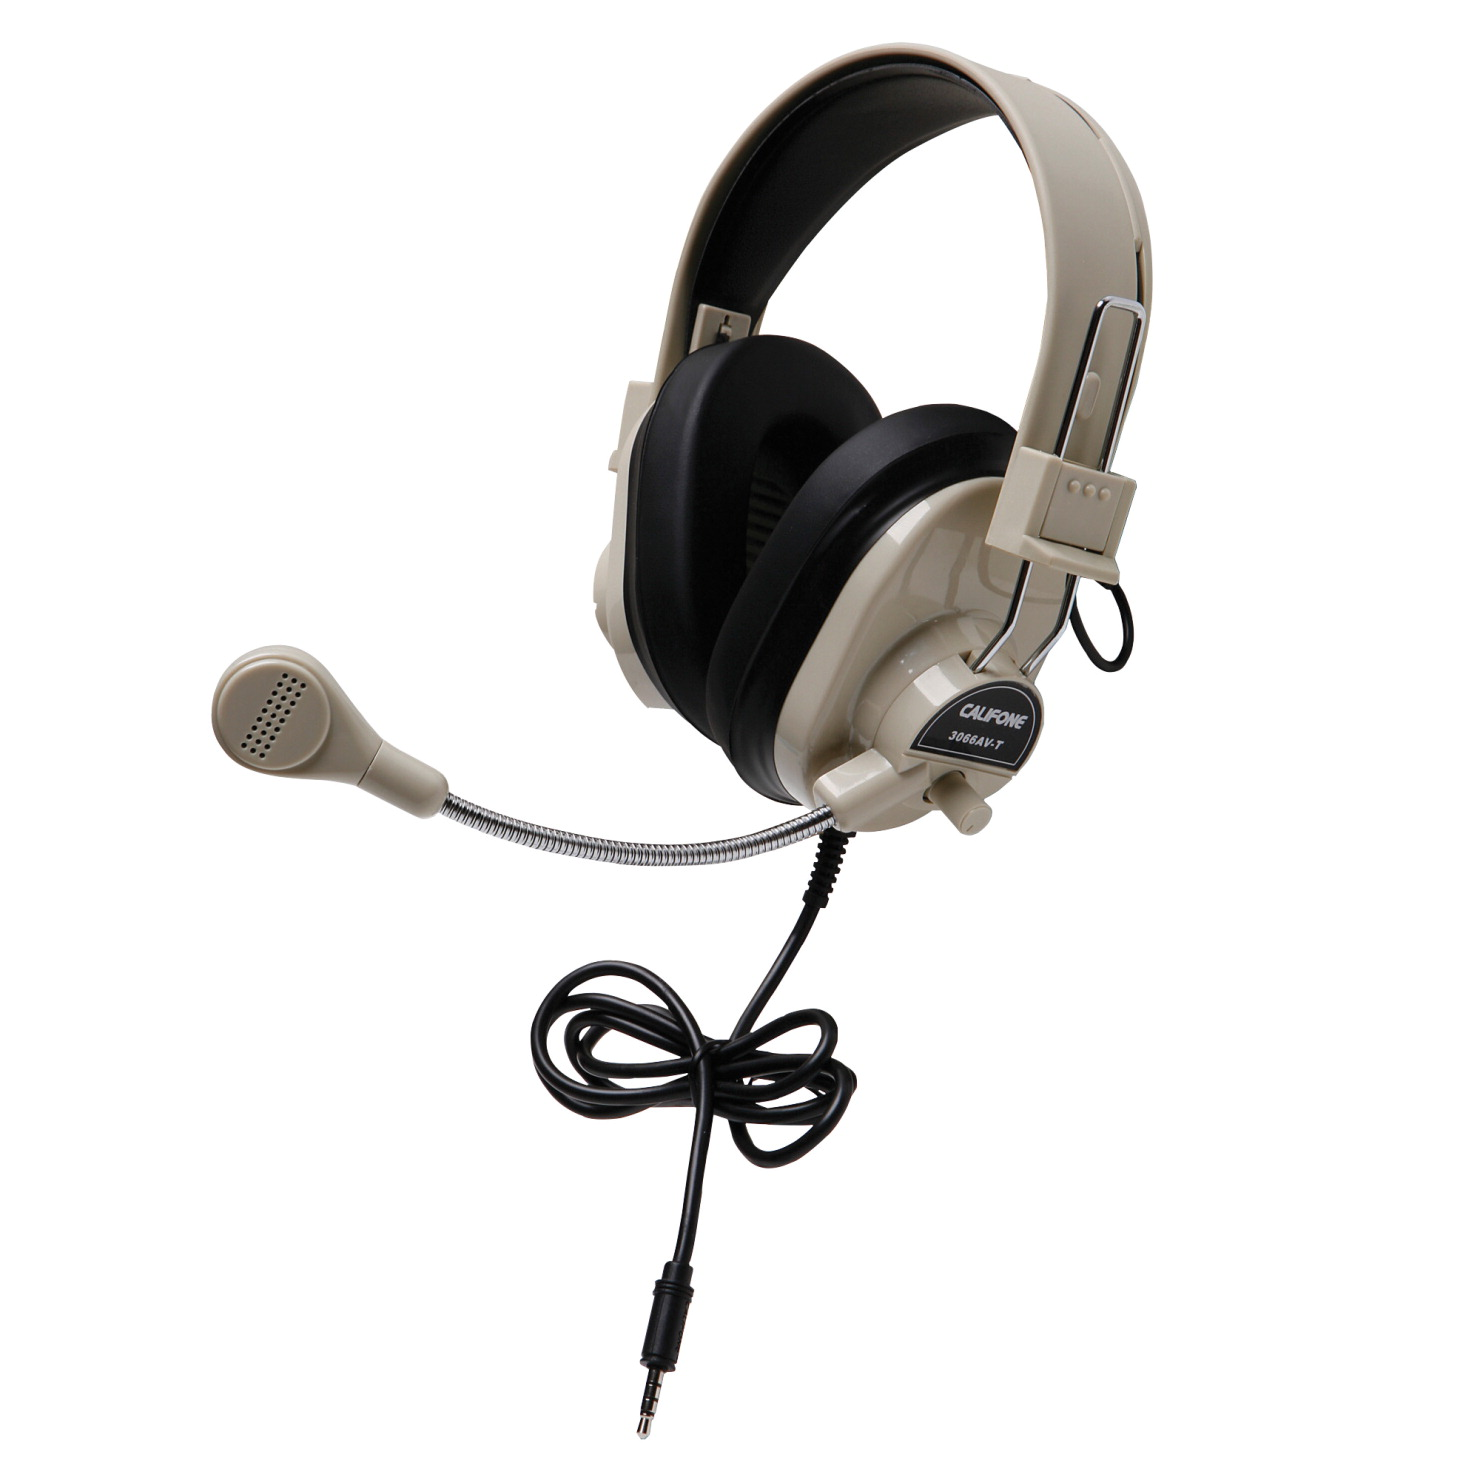 Califone 3066AVT Deluxe Multimedia Stereo Headset with 3.5mm Plug